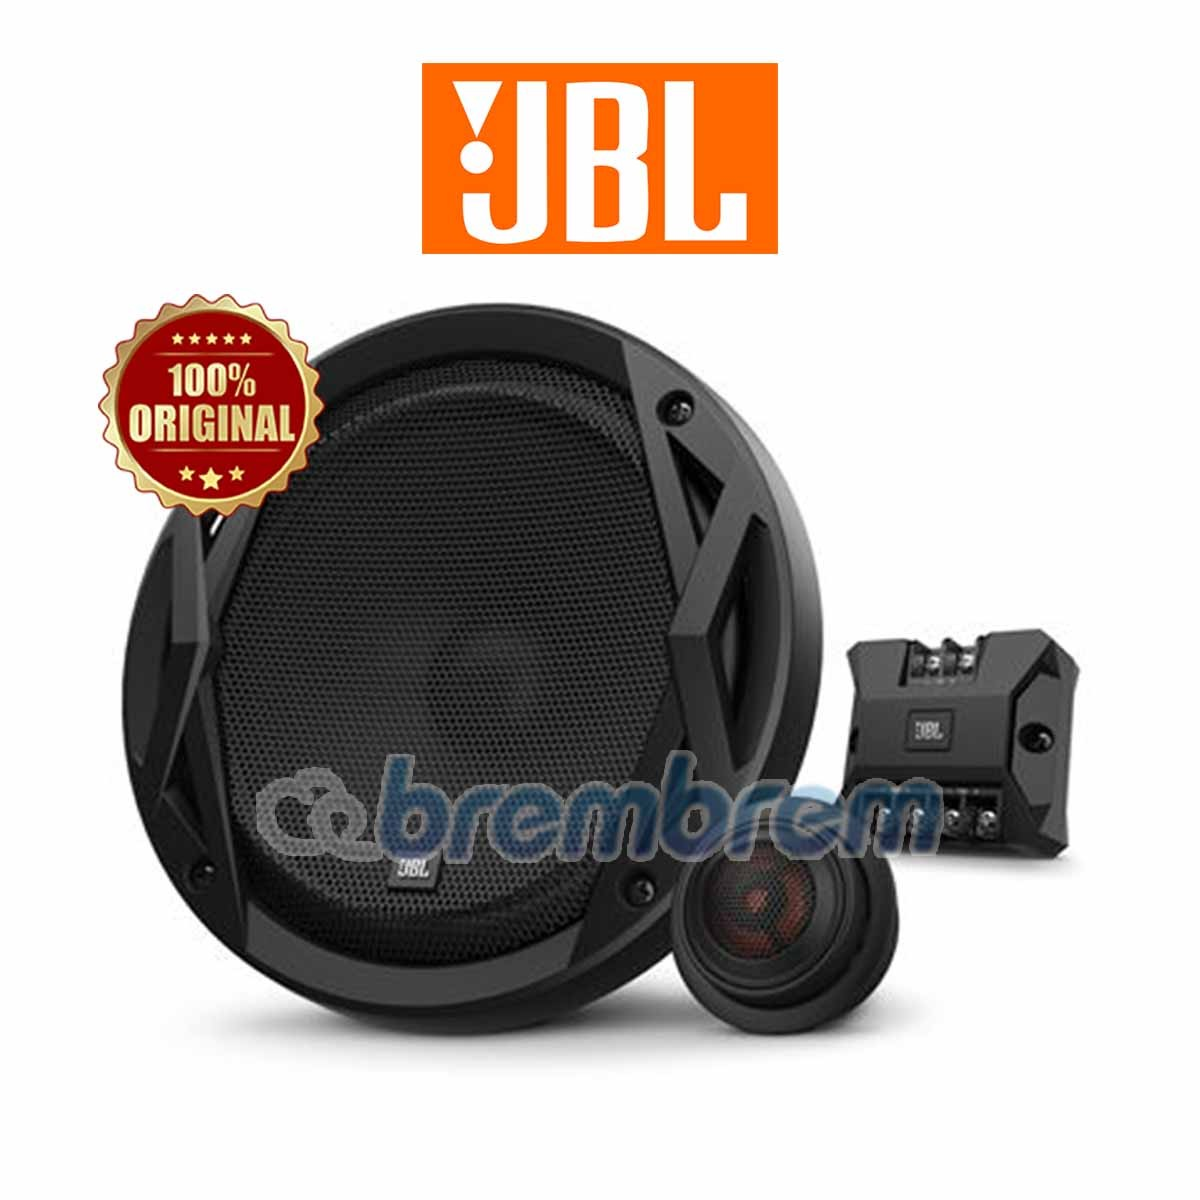 JBL CLUB 6500C - SPEAKER 2 WAY